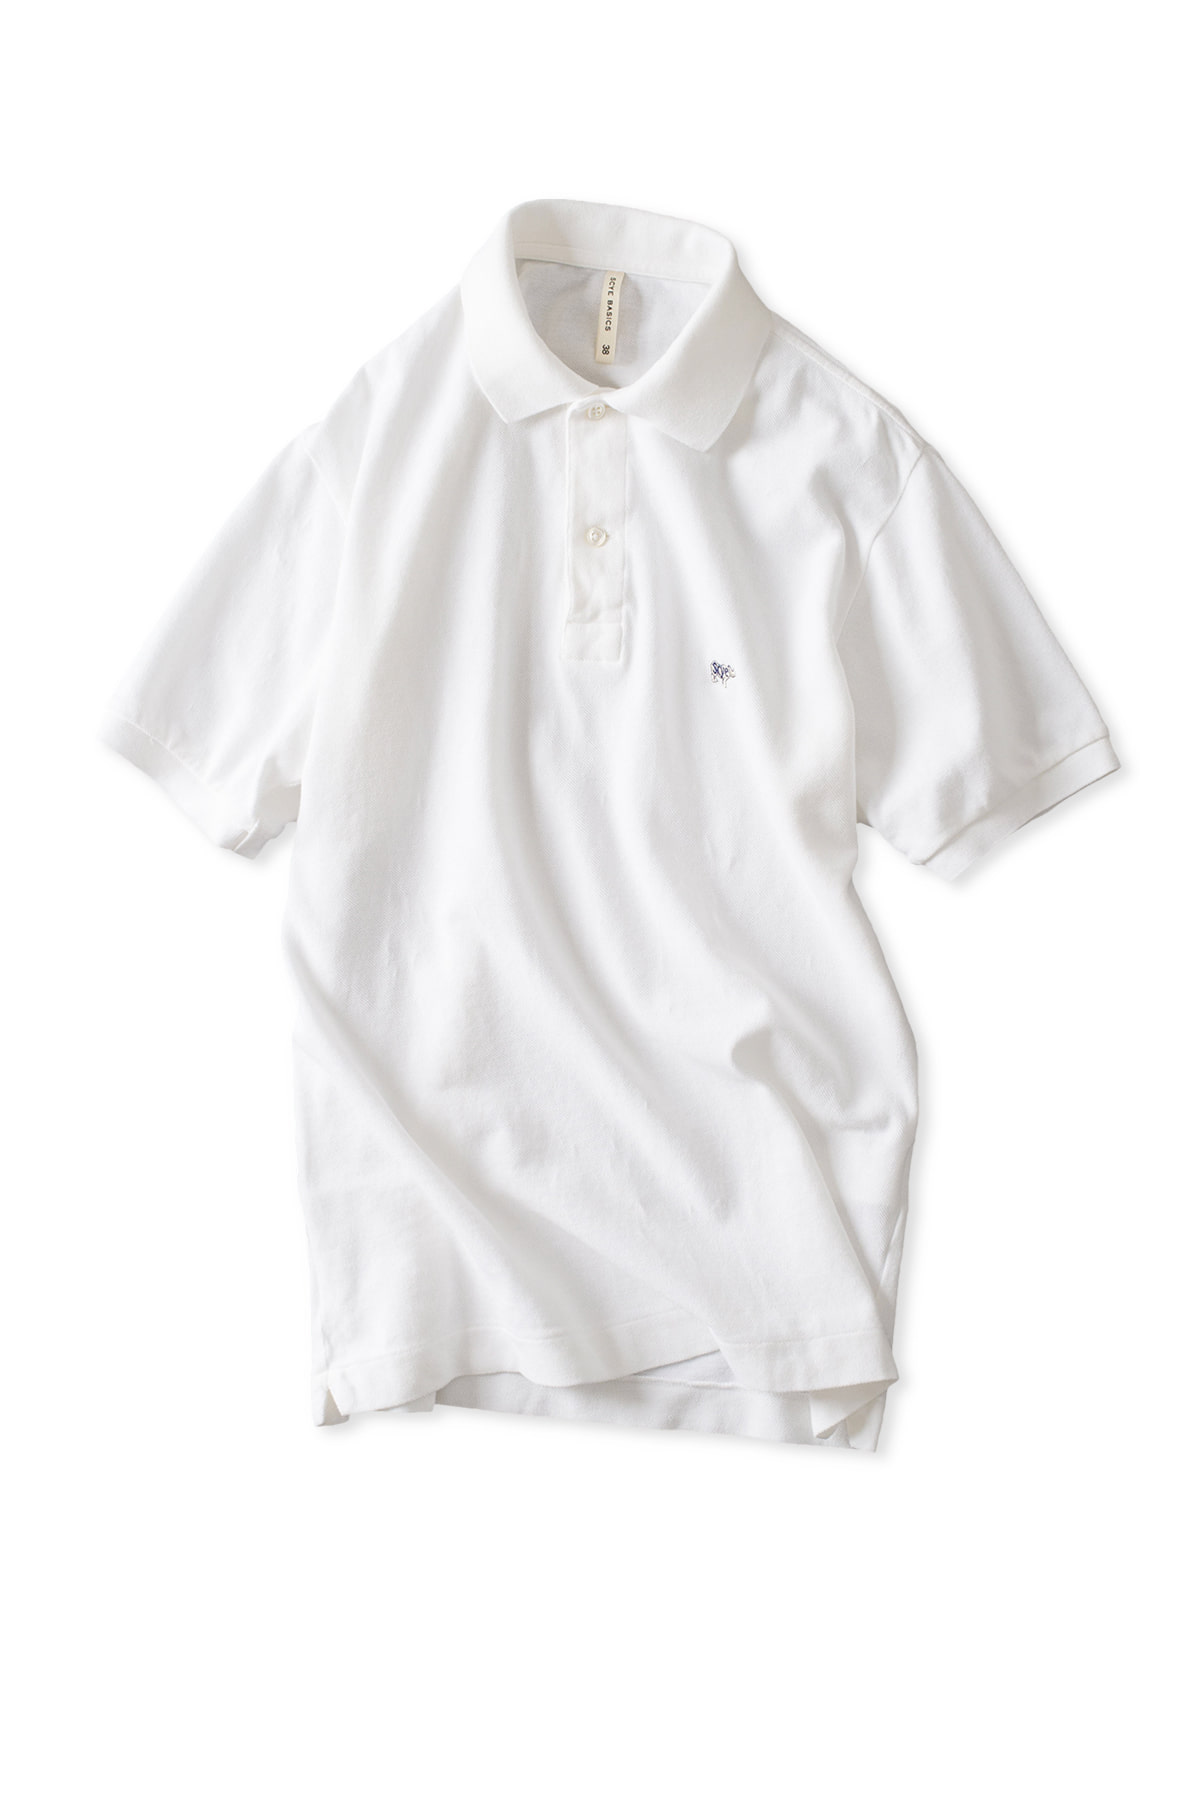 Scye Basics : Cotton Pique Polo Shirt (Off White)